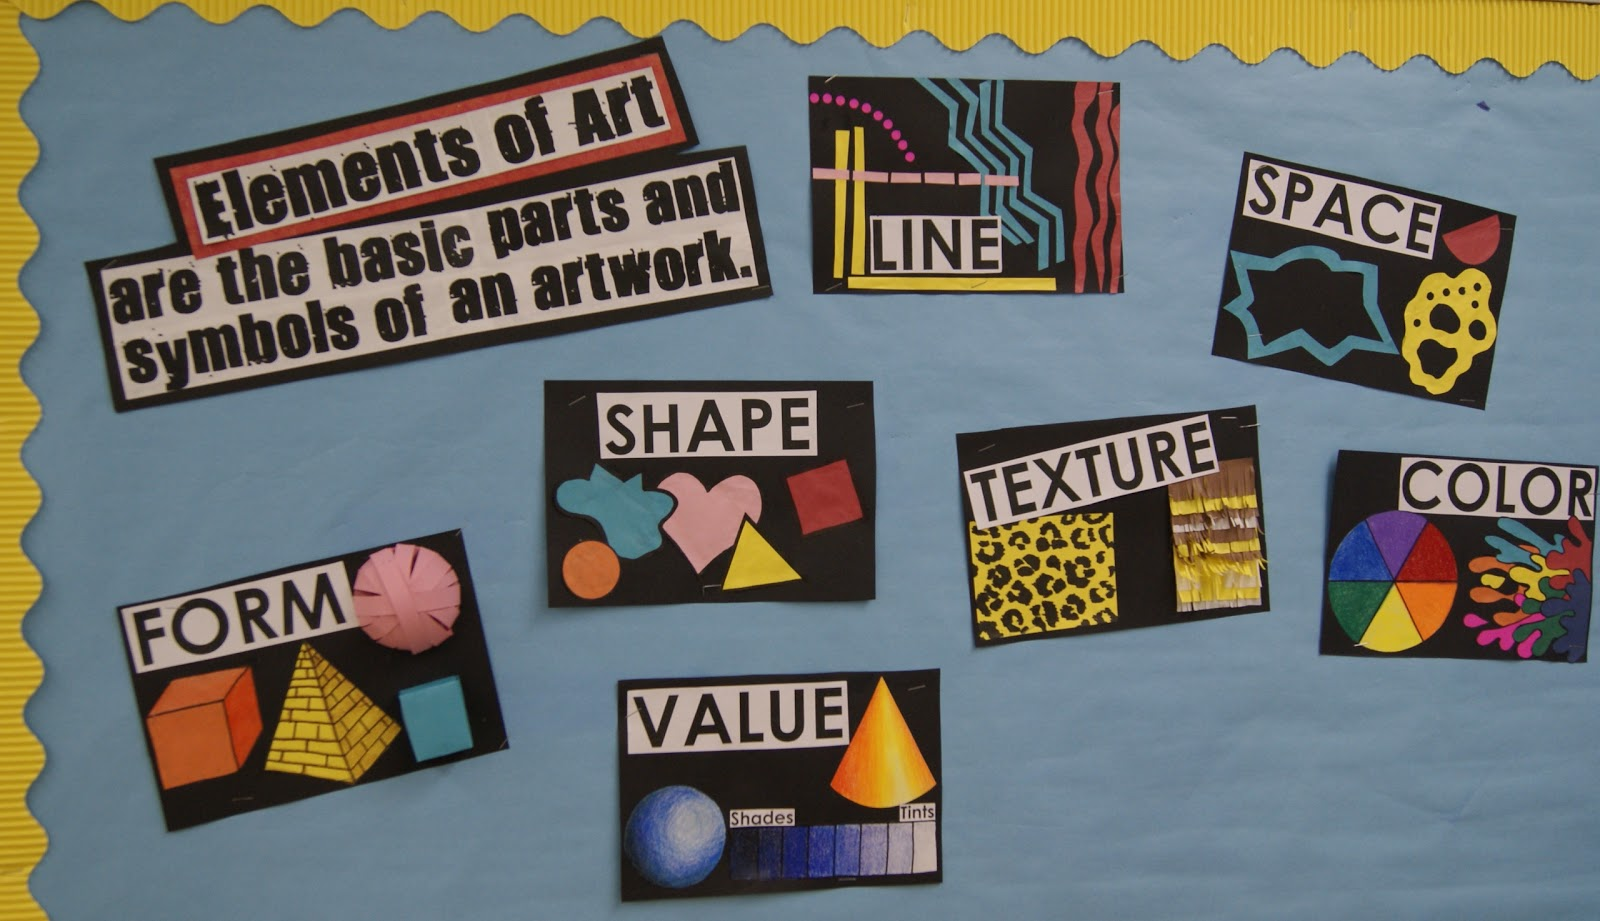 7 Elements Of Art : Adventures in middle school art class intro to the